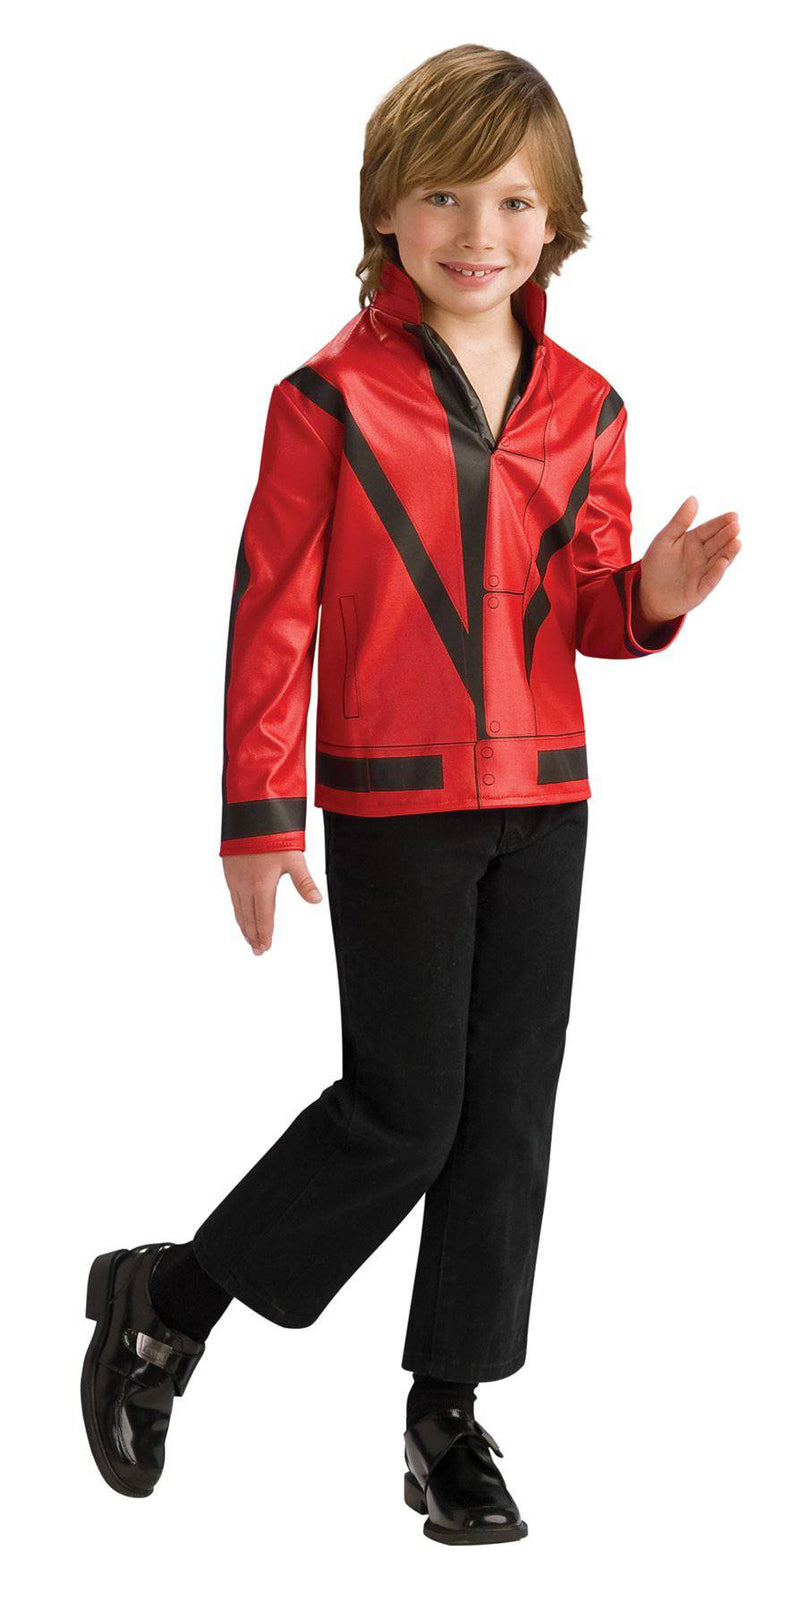 Rubie's Boys' Michael Jackson Red Jacket  Costume - Costume Arena